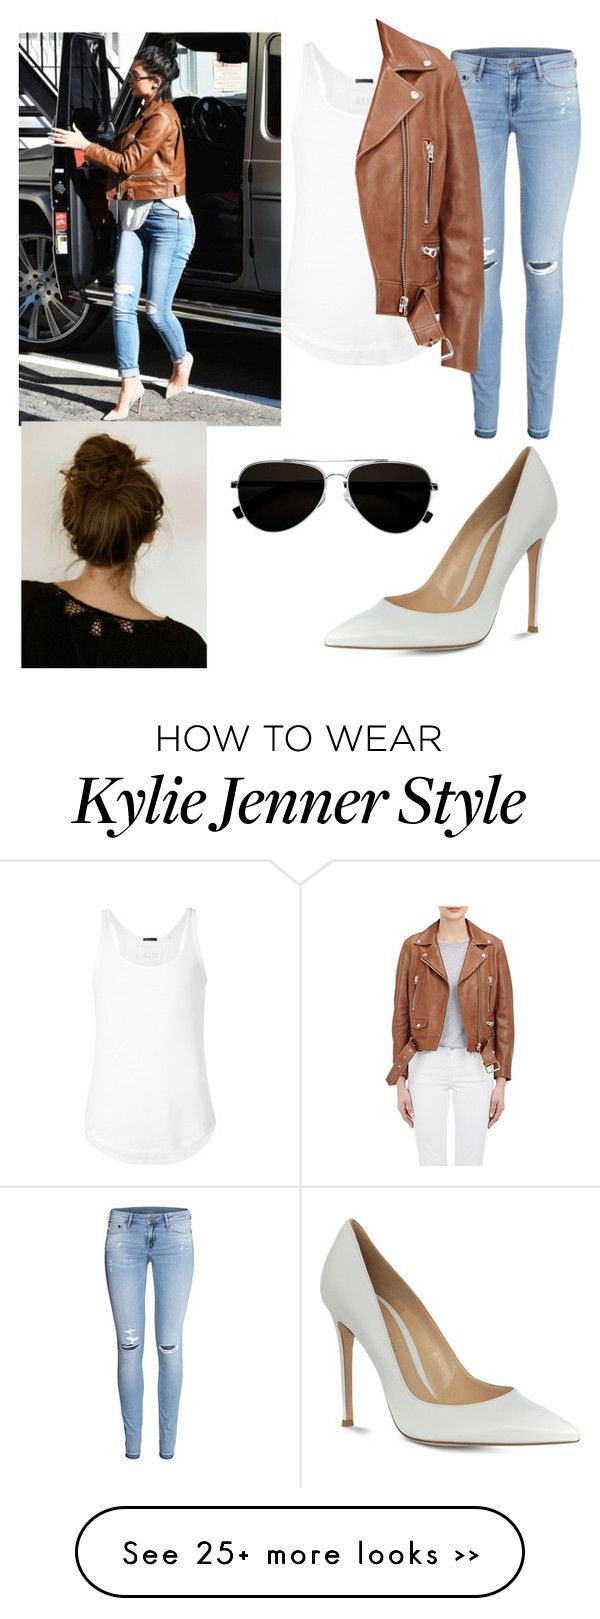 """""""Kylie Jenner"""" by ayannap on Polyvore"""